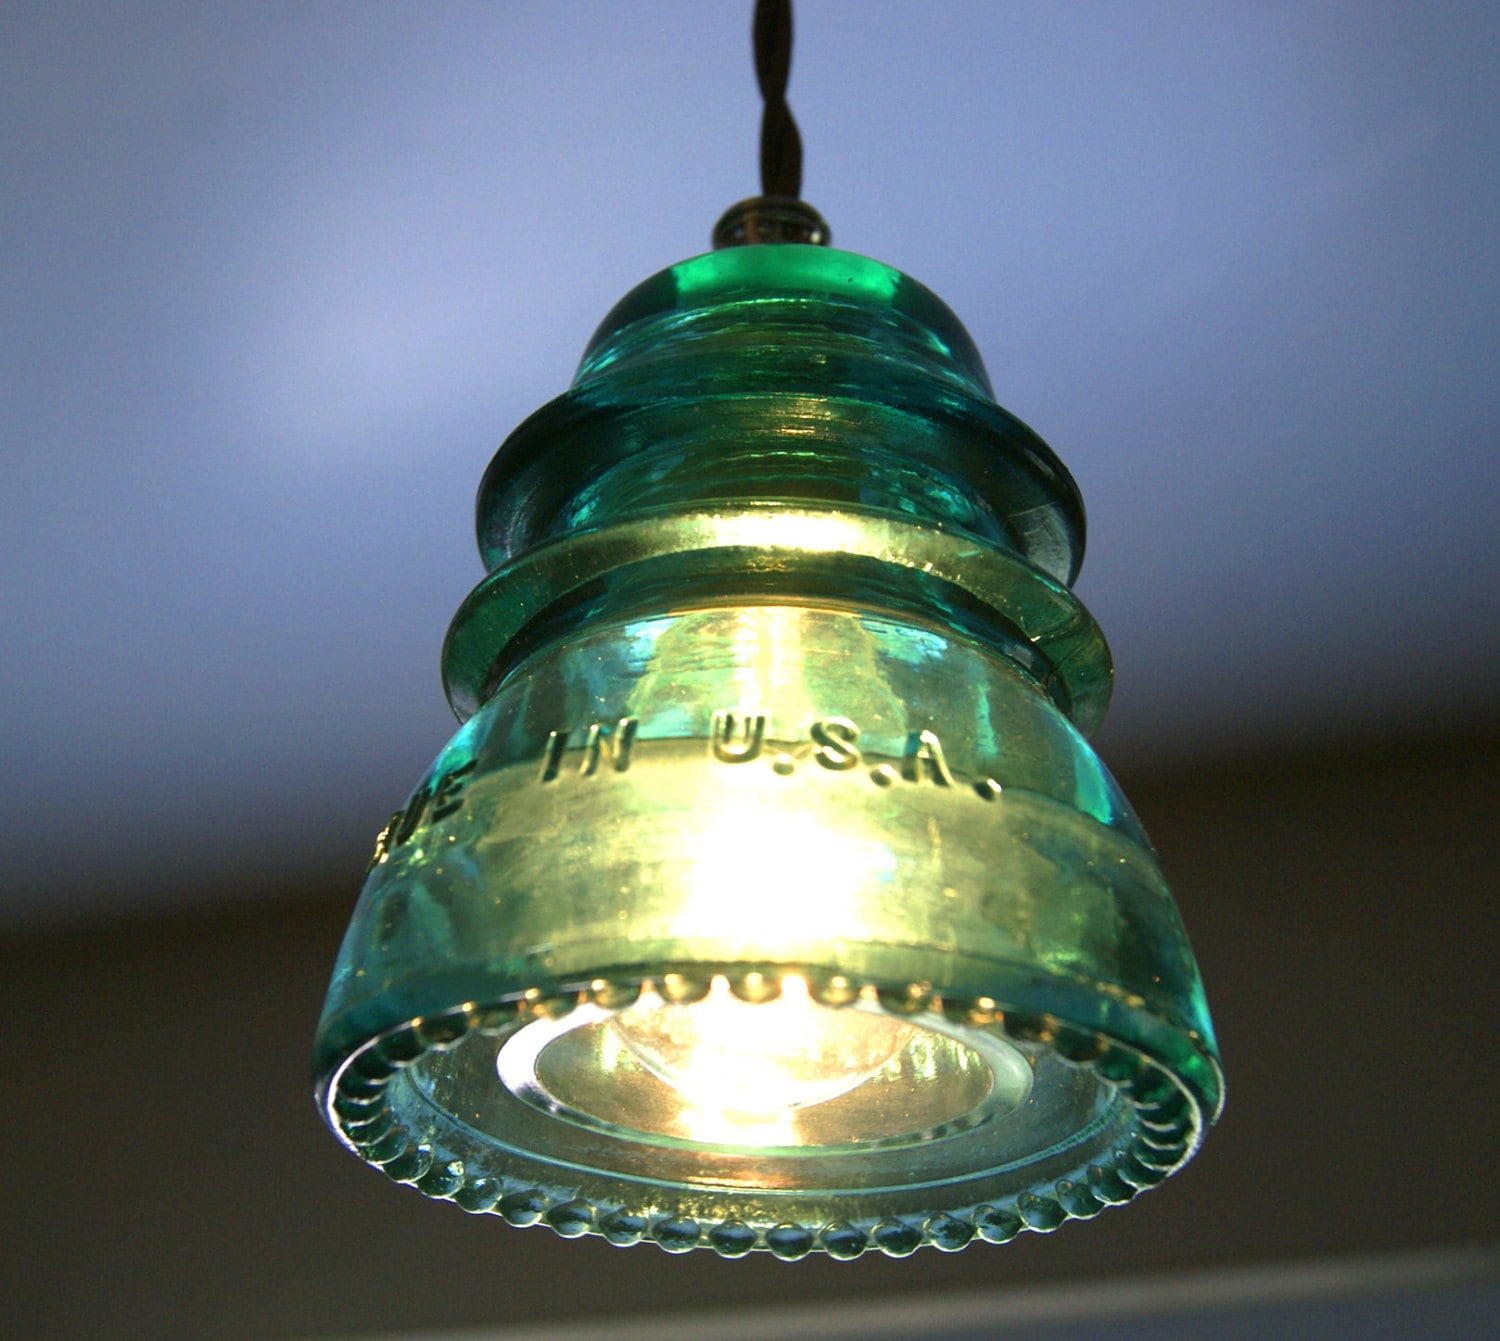 Glass insulator pendant lamp insulator swag light for Insulator pendant light